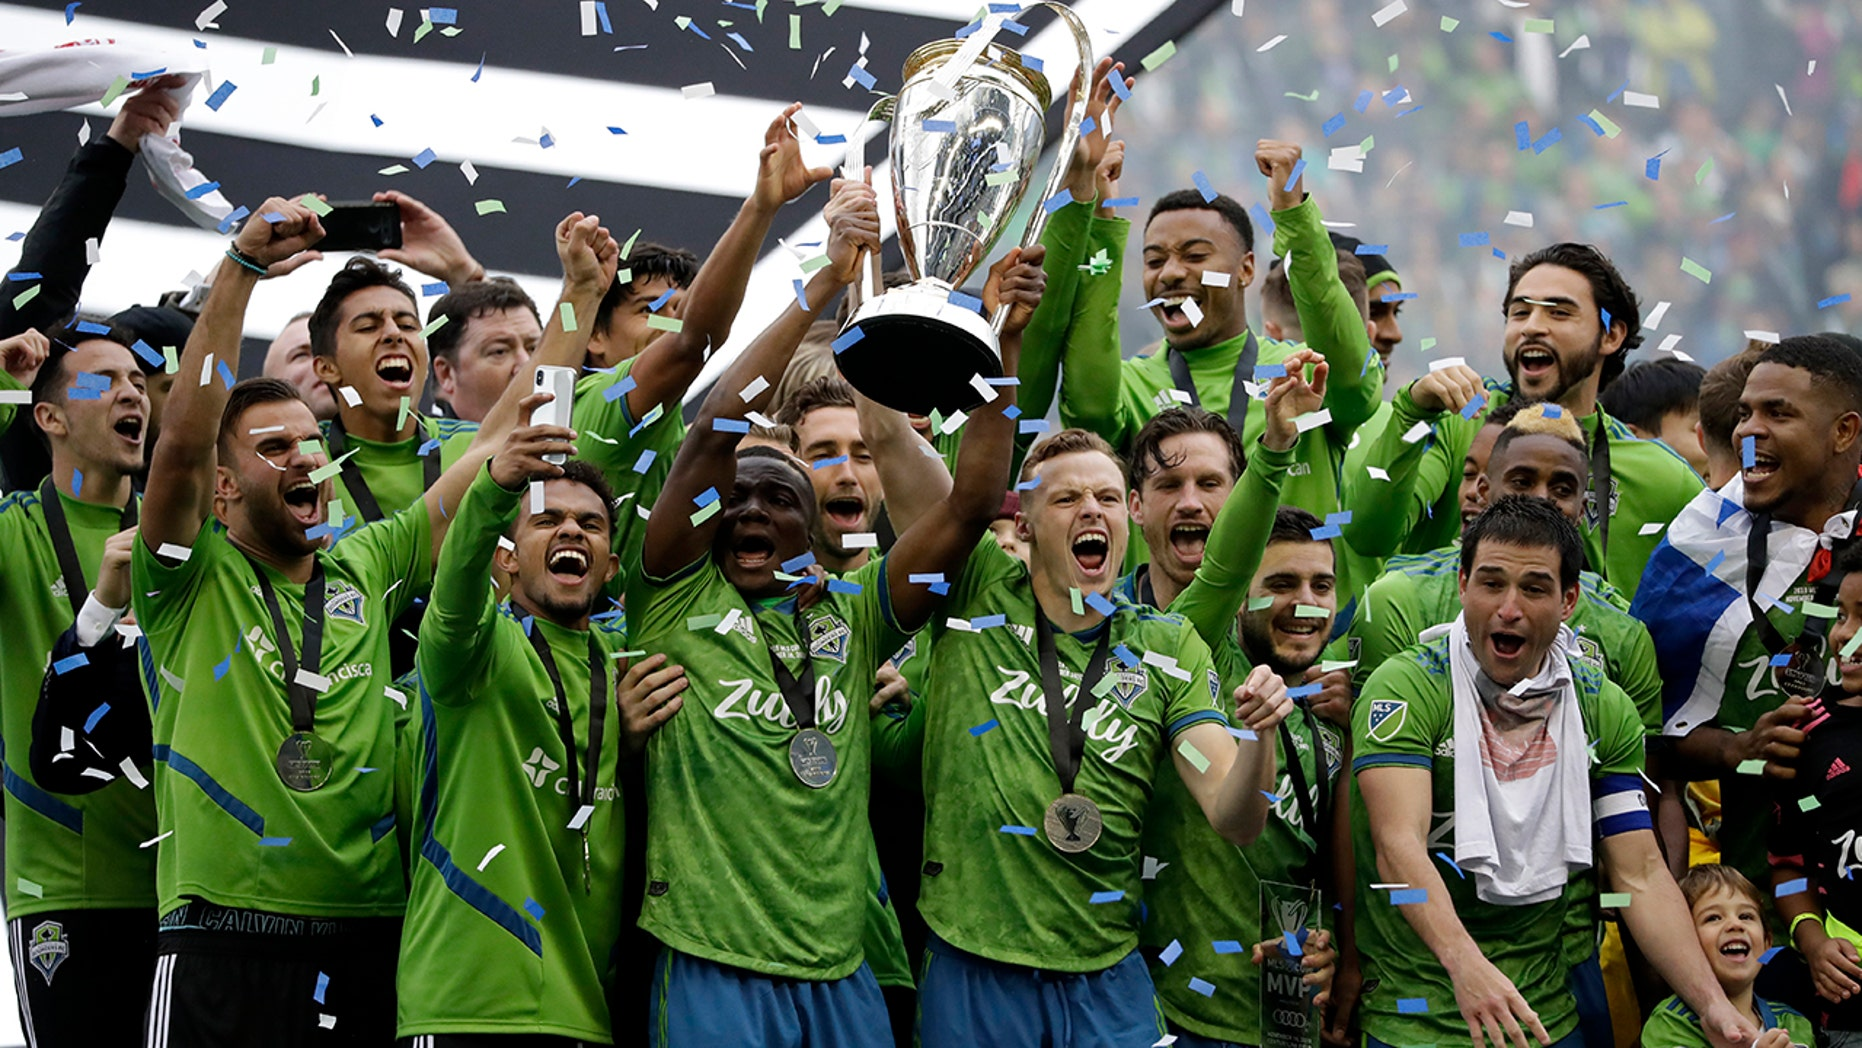 Seattle Sounders celebrate Sunday, Nov. 10, 2019, after the team beat the Toronto FC in the MLS Cup championship soccer match in Seattle. The Sounders won 3-1. (AP Photo/Elaine Thompson)